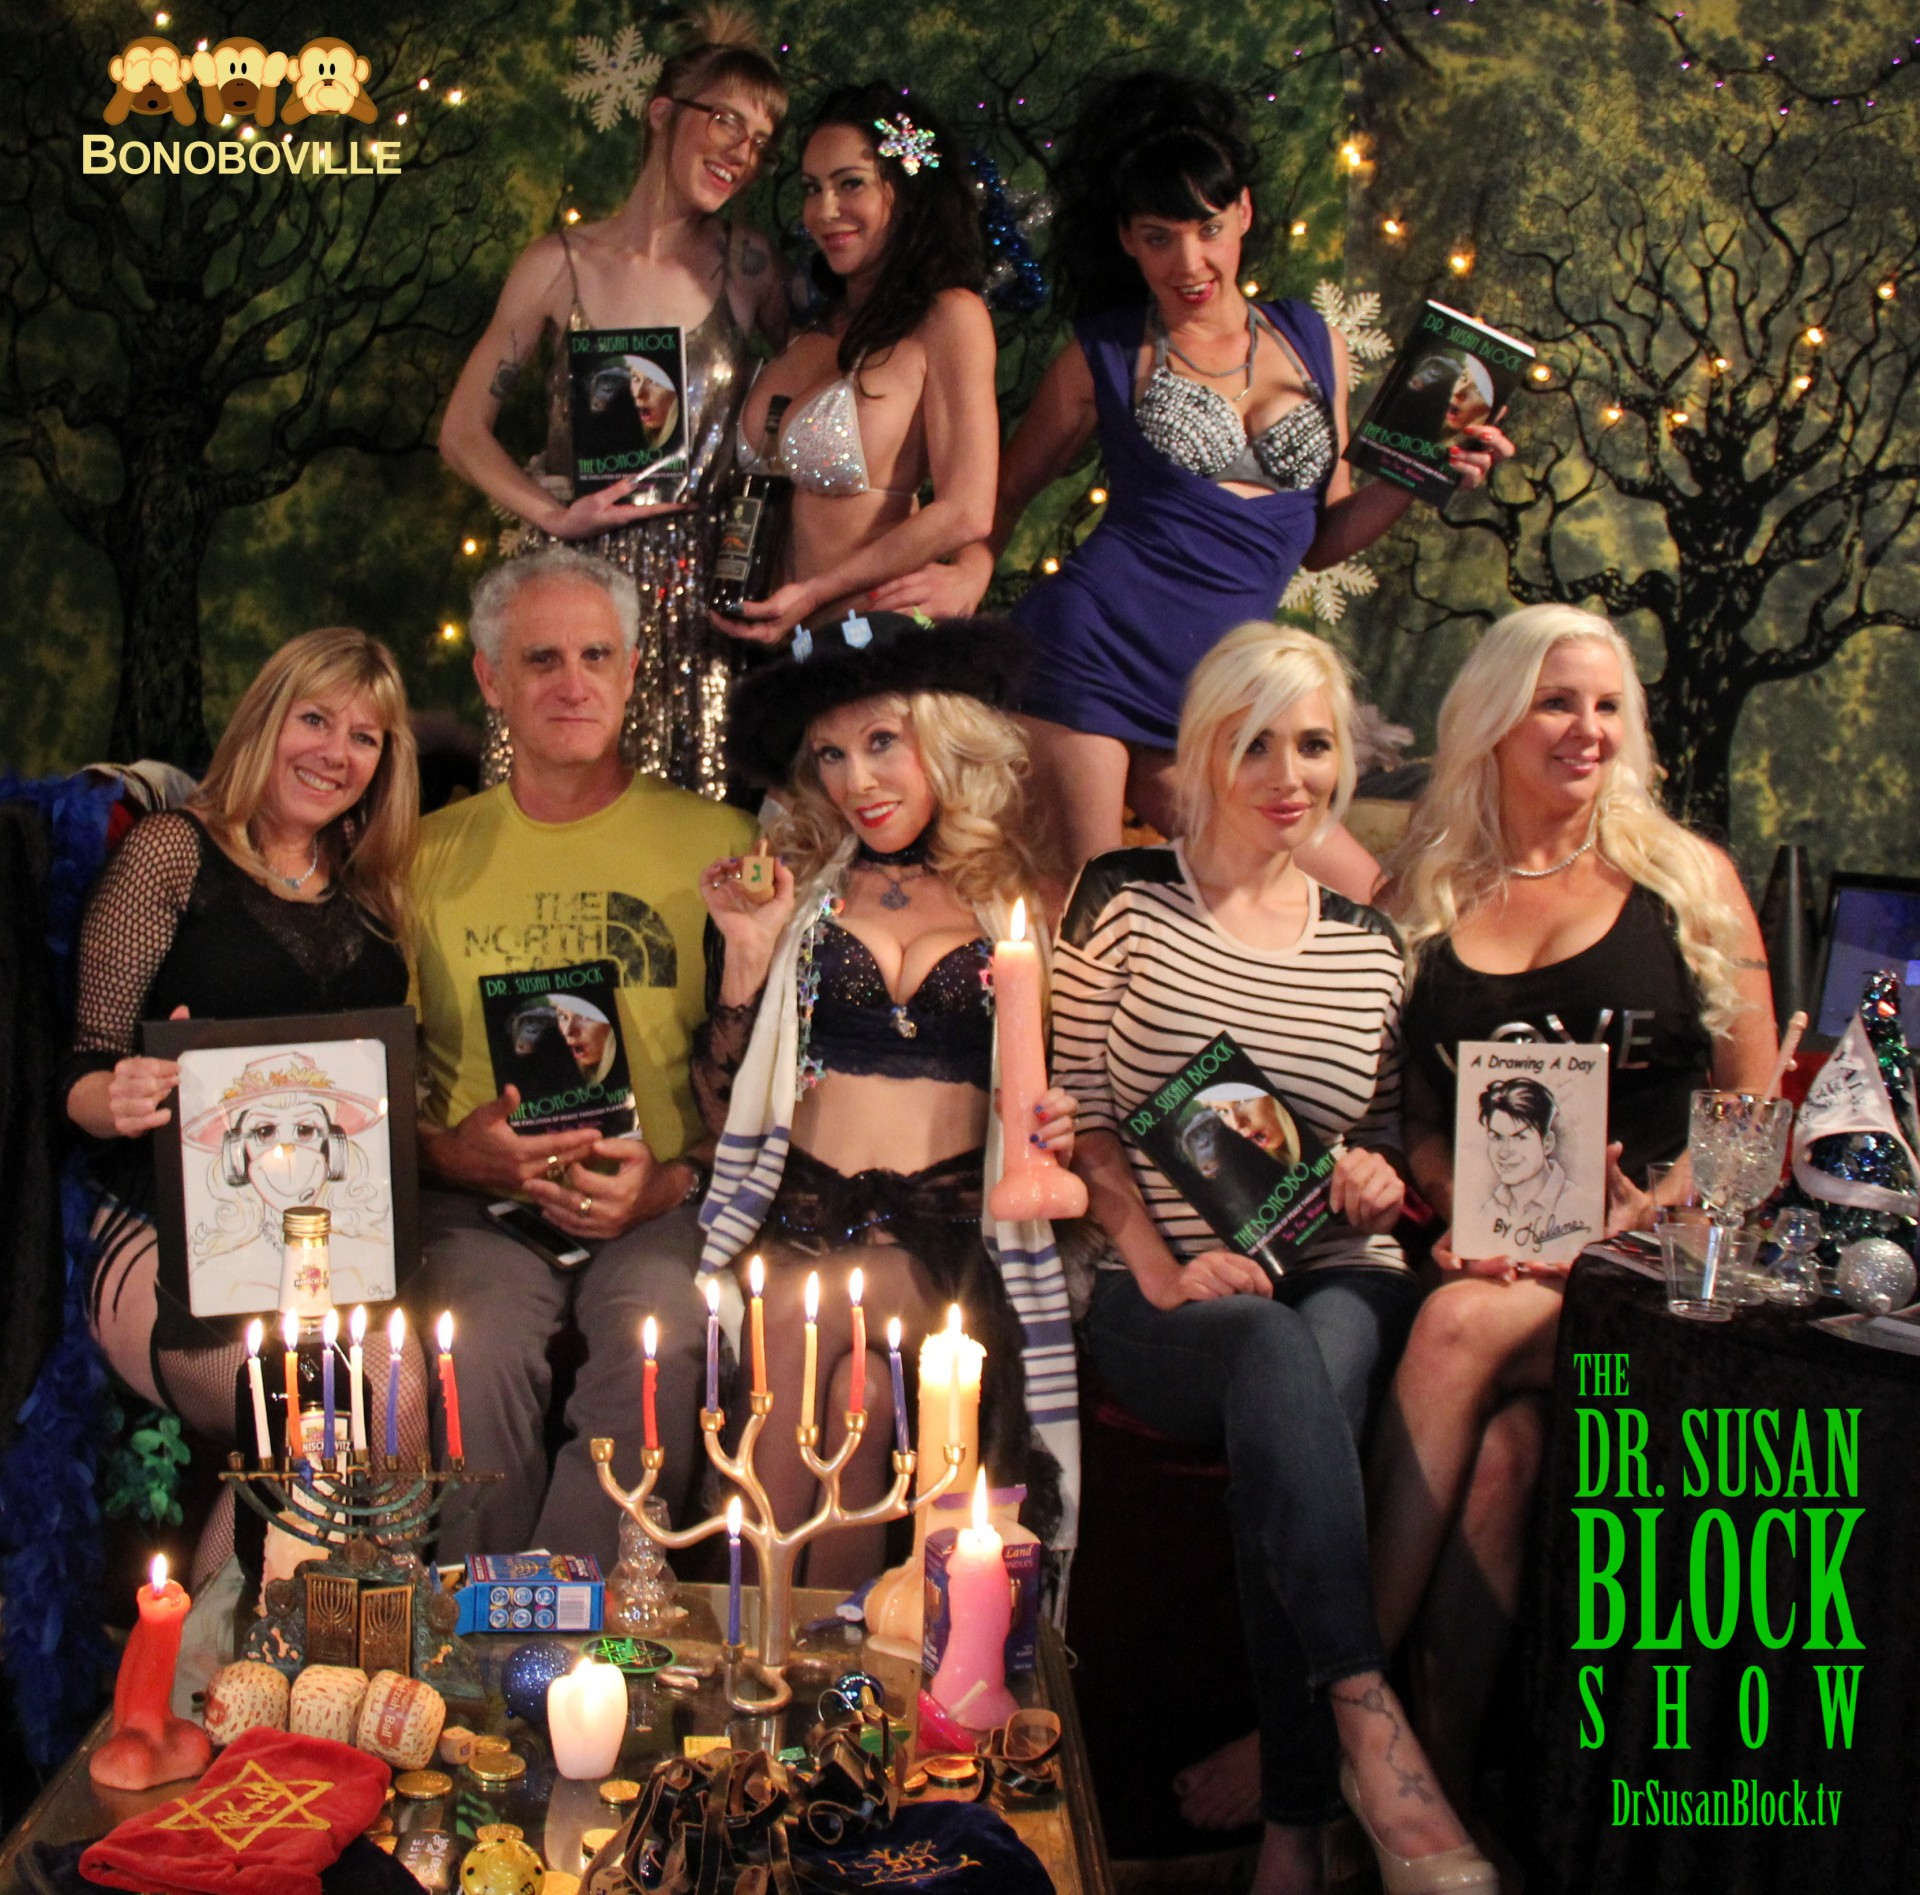 Hanukkah in Bonoboville: Helane, Ross Jeffries, Dr. Susan Block, Kendra Jade Rossi with The Bonobo Way, Veronica Vaughn with A Drawing a Day. Row 2: Ono Bo, Dayton Rains with Ron de Jeremy Rum, Biz Bonobo. Photo: Unscene Abe